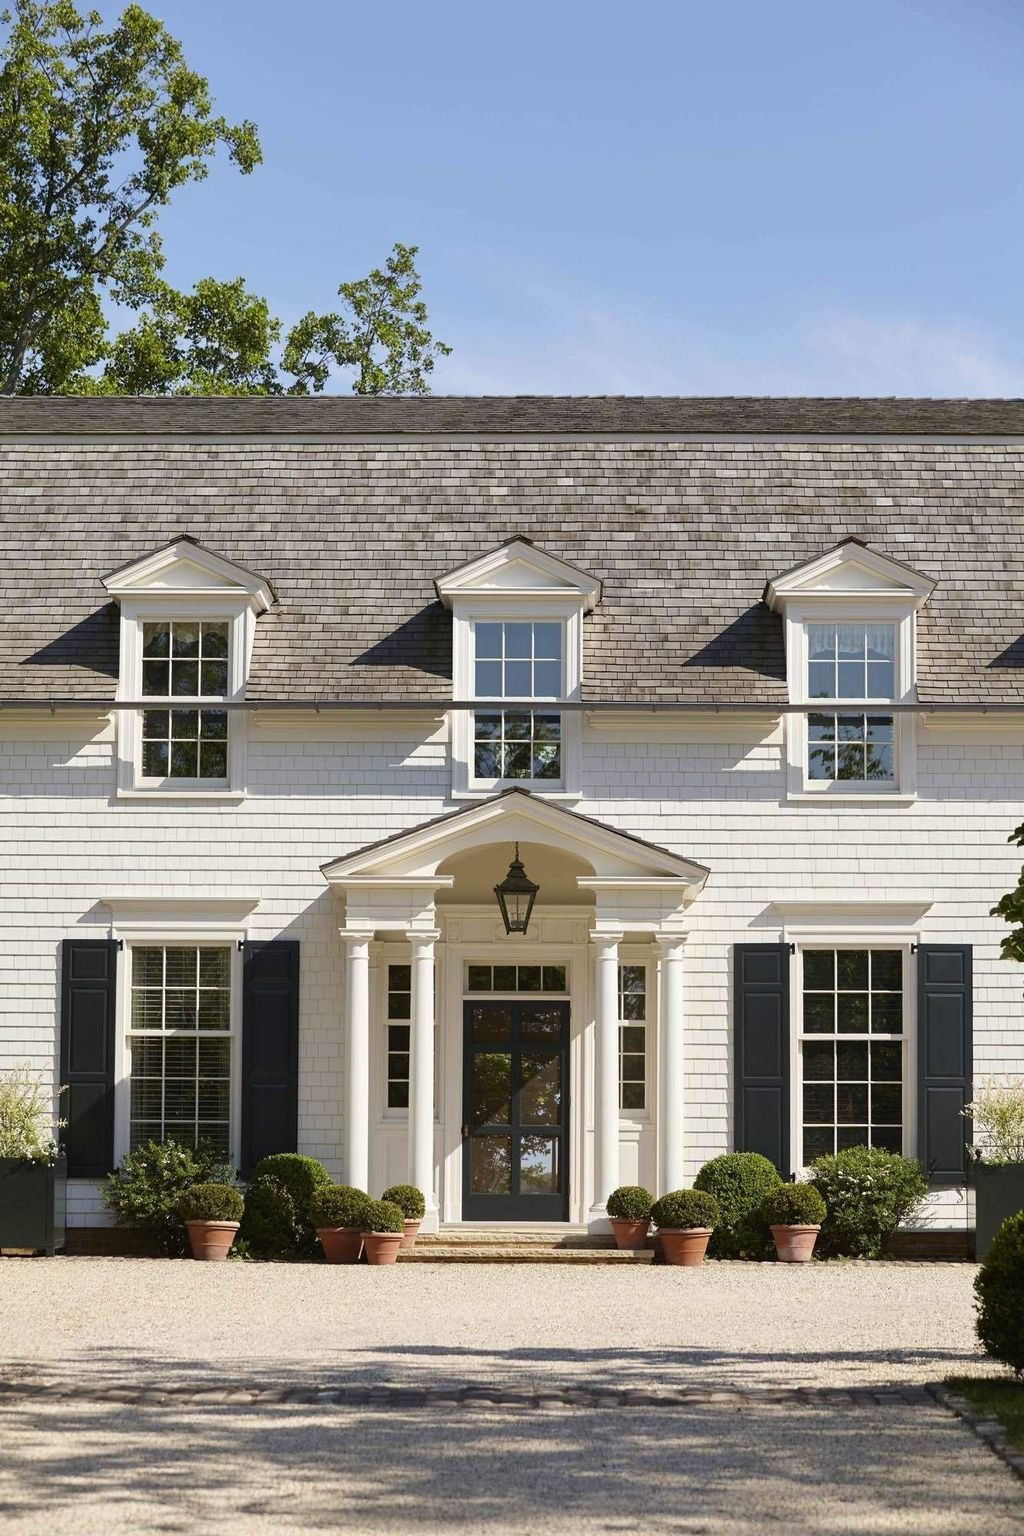 32 Stunning American House Architecture Design Ideas That Most People Look For American Houses Colonial Exterior Colonial House